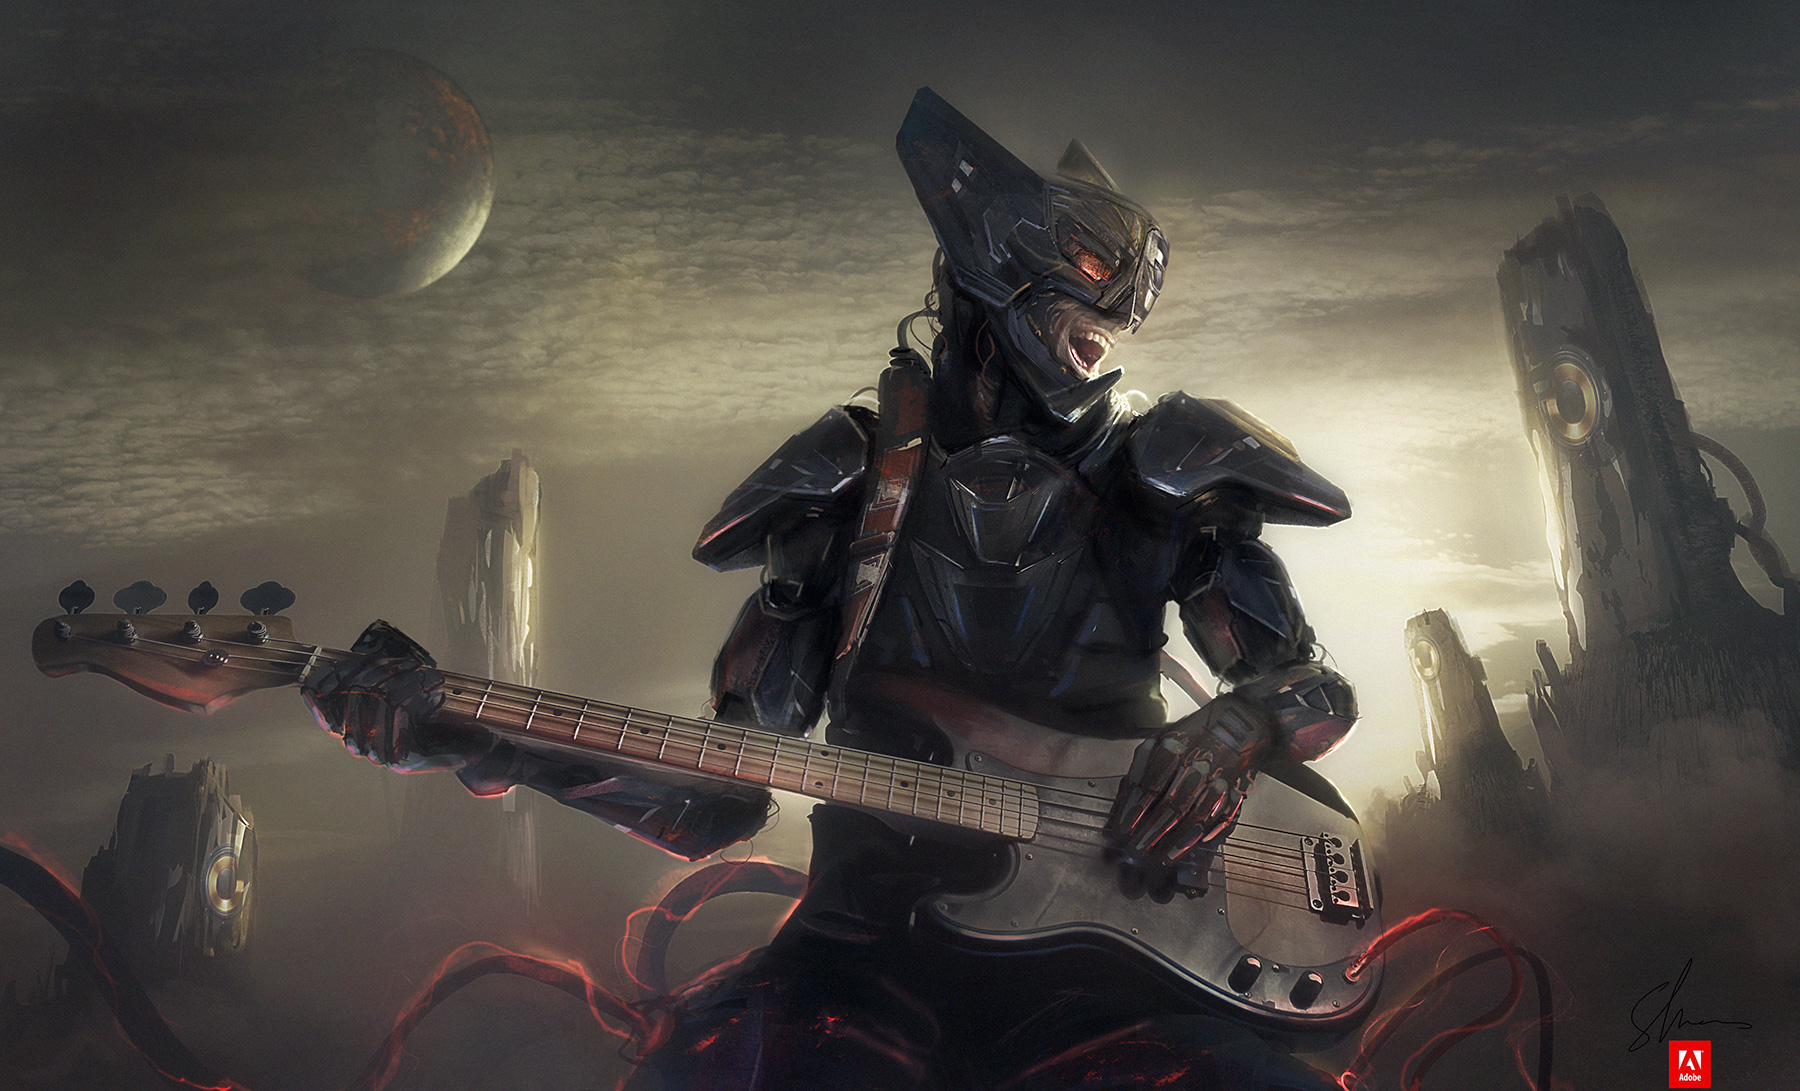 The Space Bassist by Shue13